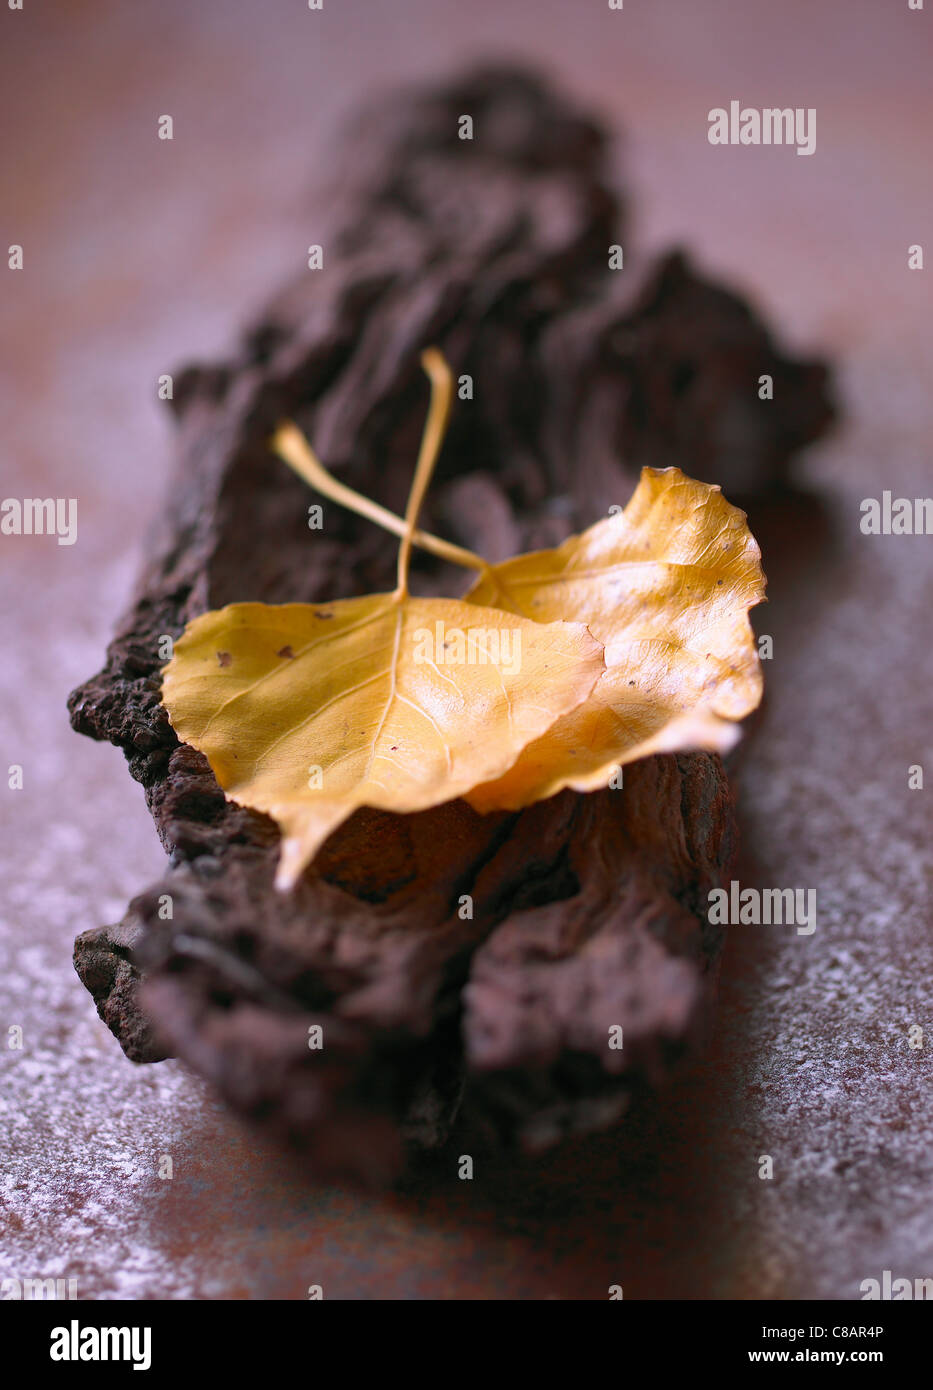 Yellow leaves on a piece of bark - Stock Image